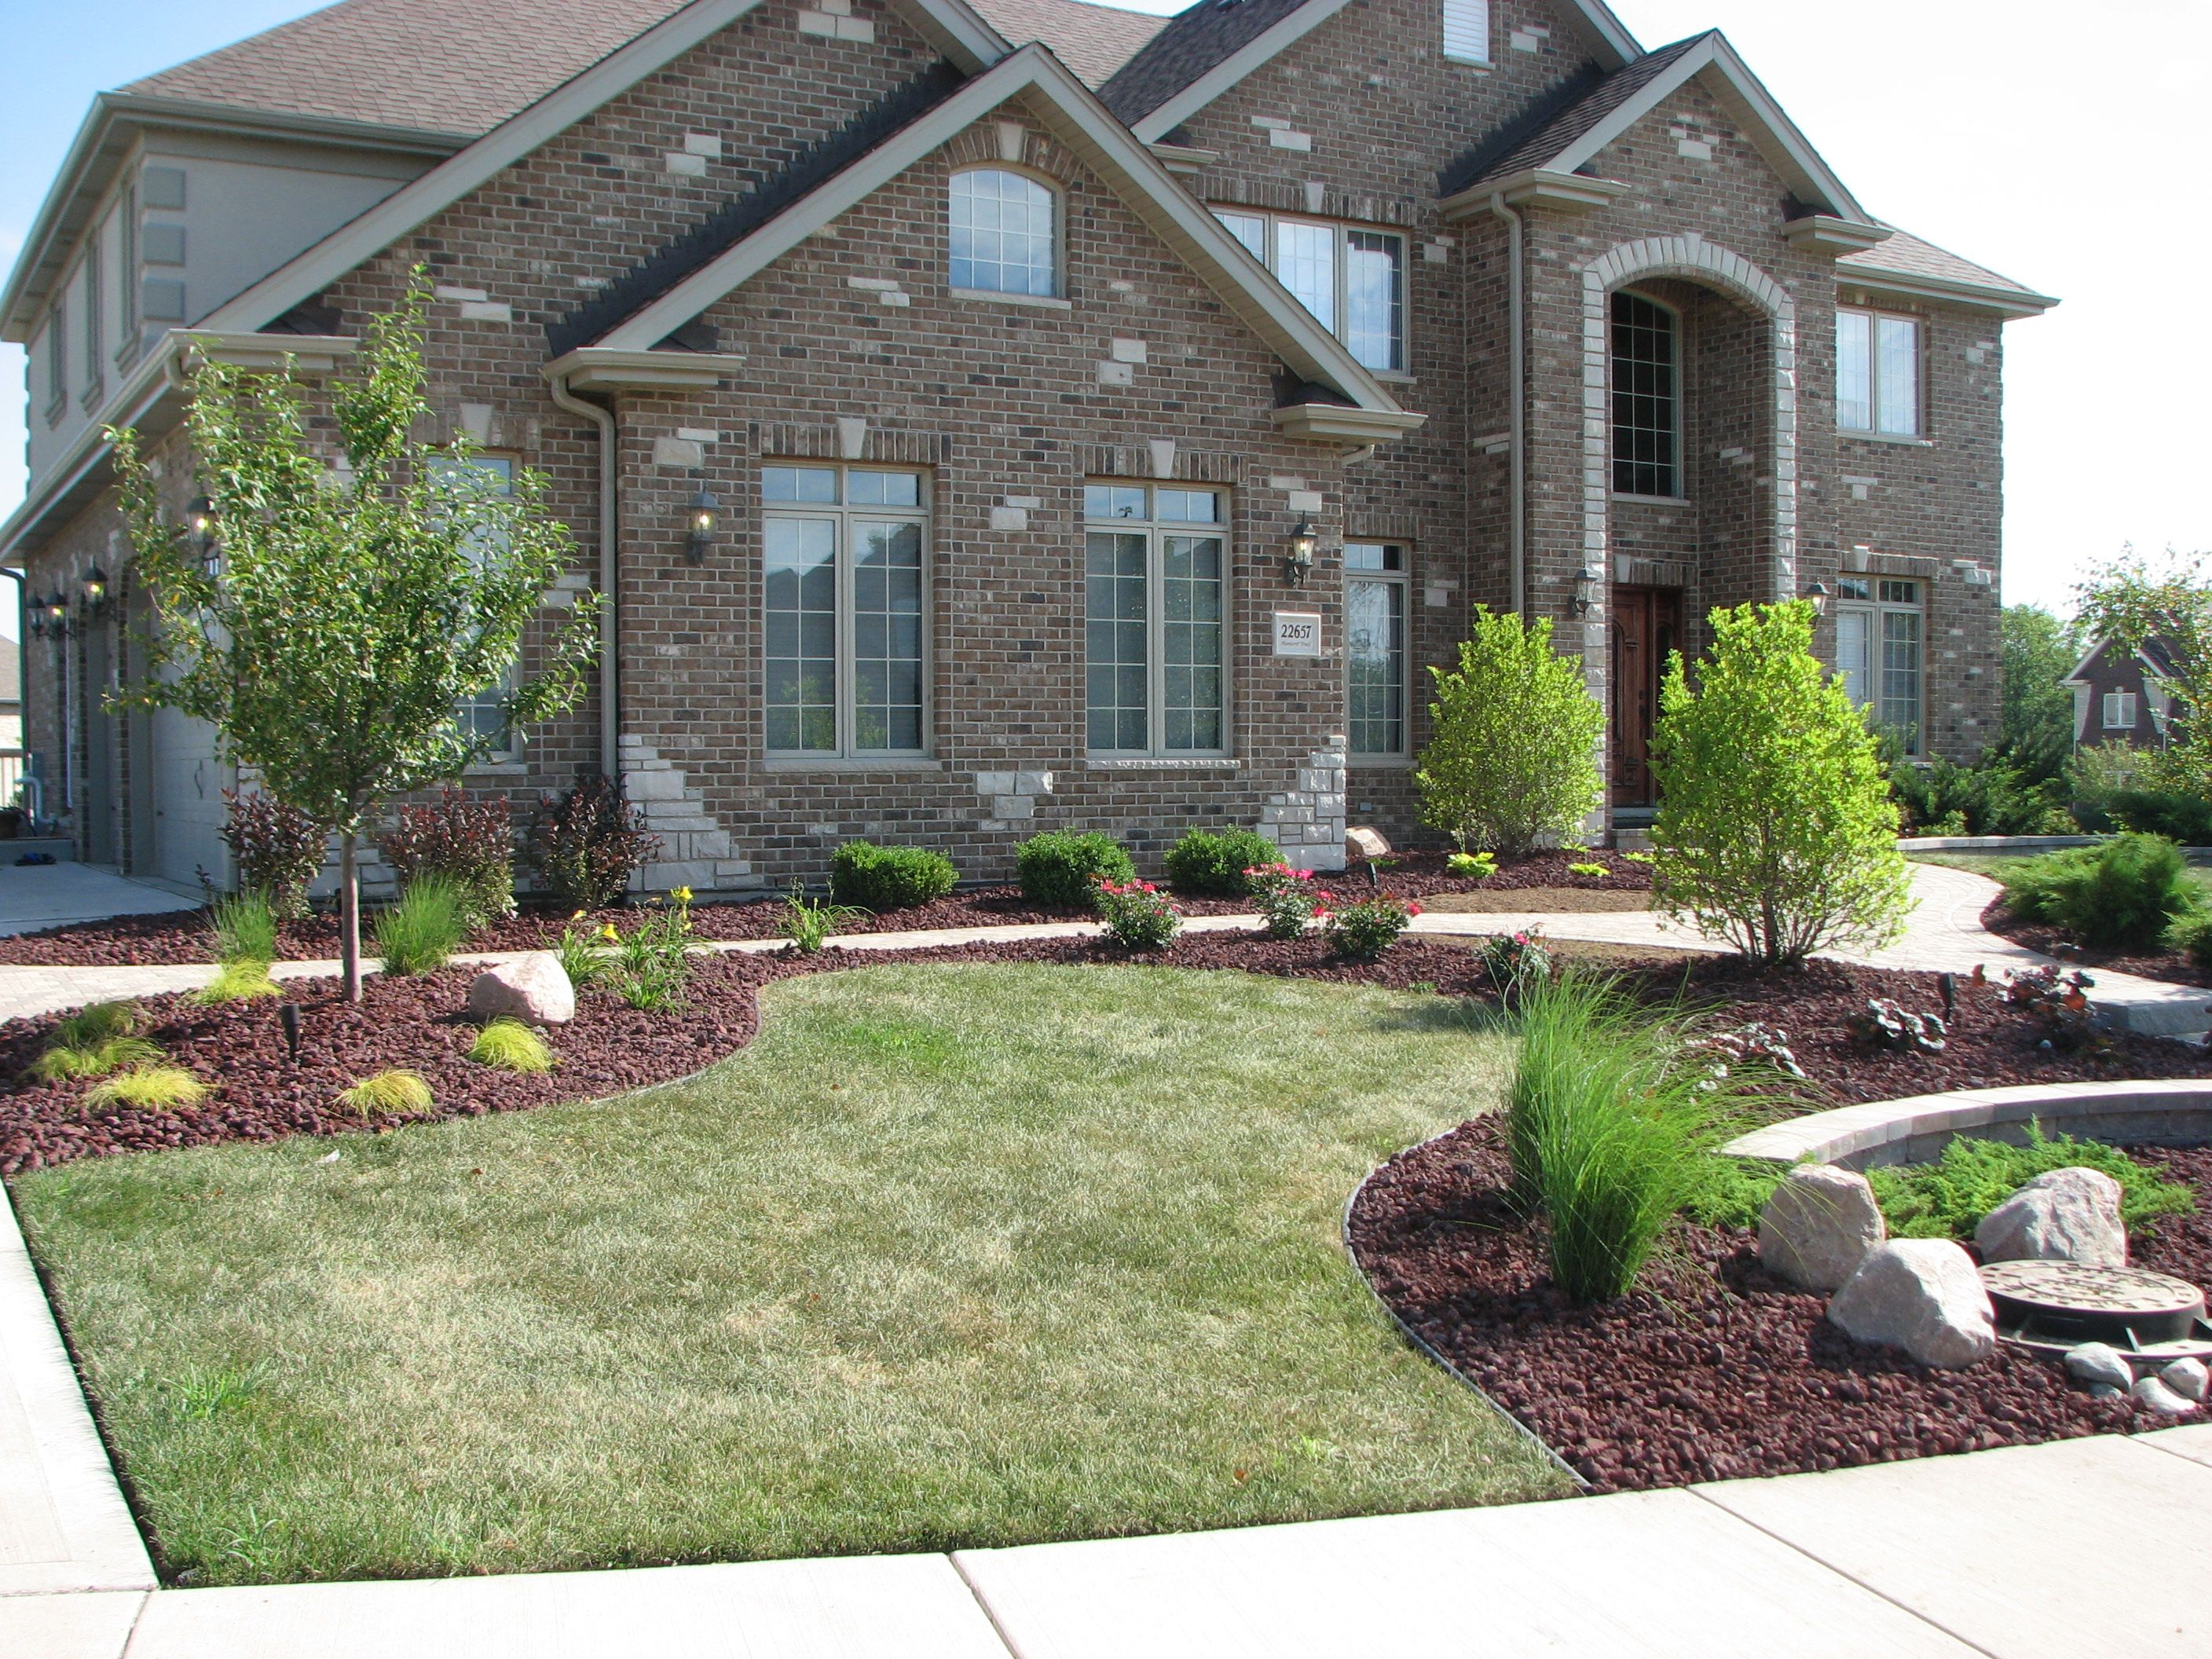 Image gallery home landscaping for New house garden ideas